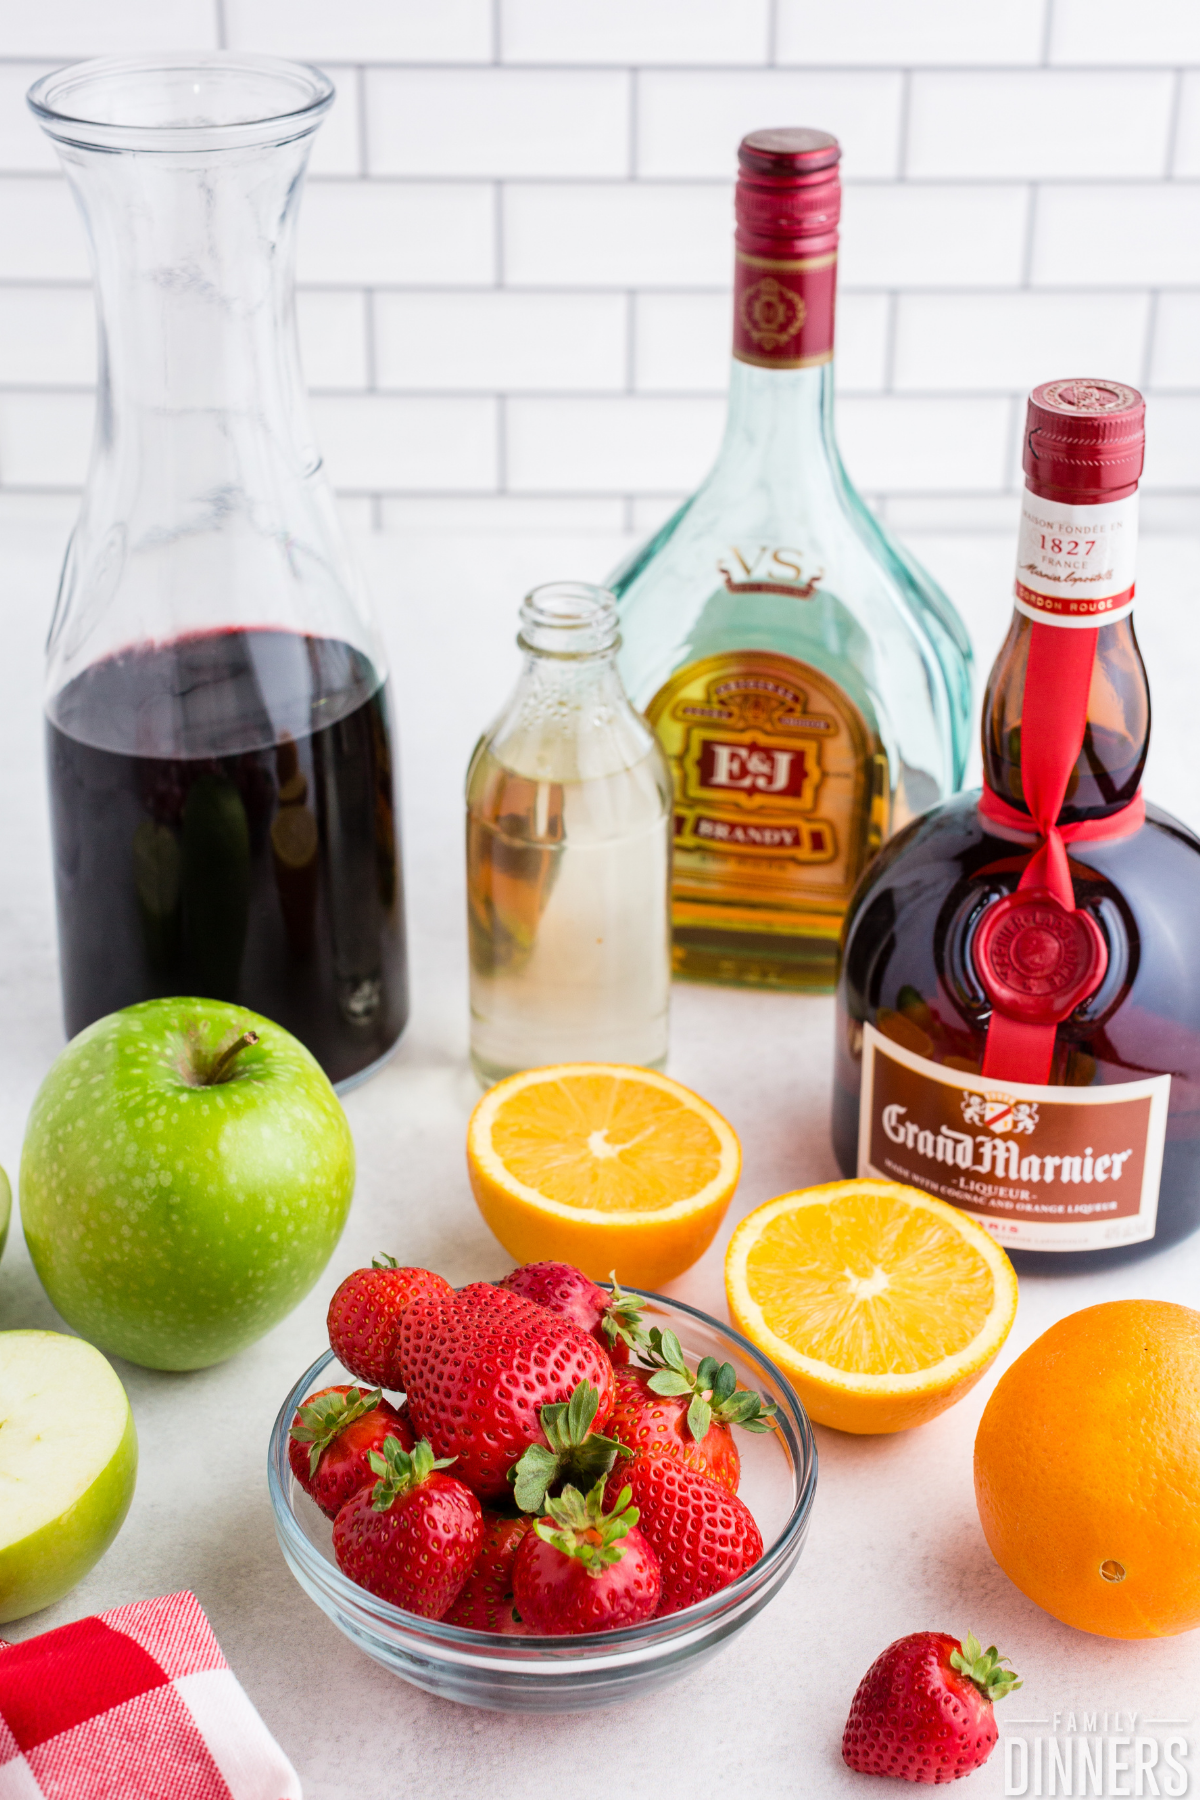 red wine sangria ingredients - grand marnier, brandy, simple syrup, red wine, apple, orange, strawberries on white counter with white subway tile backgroundw